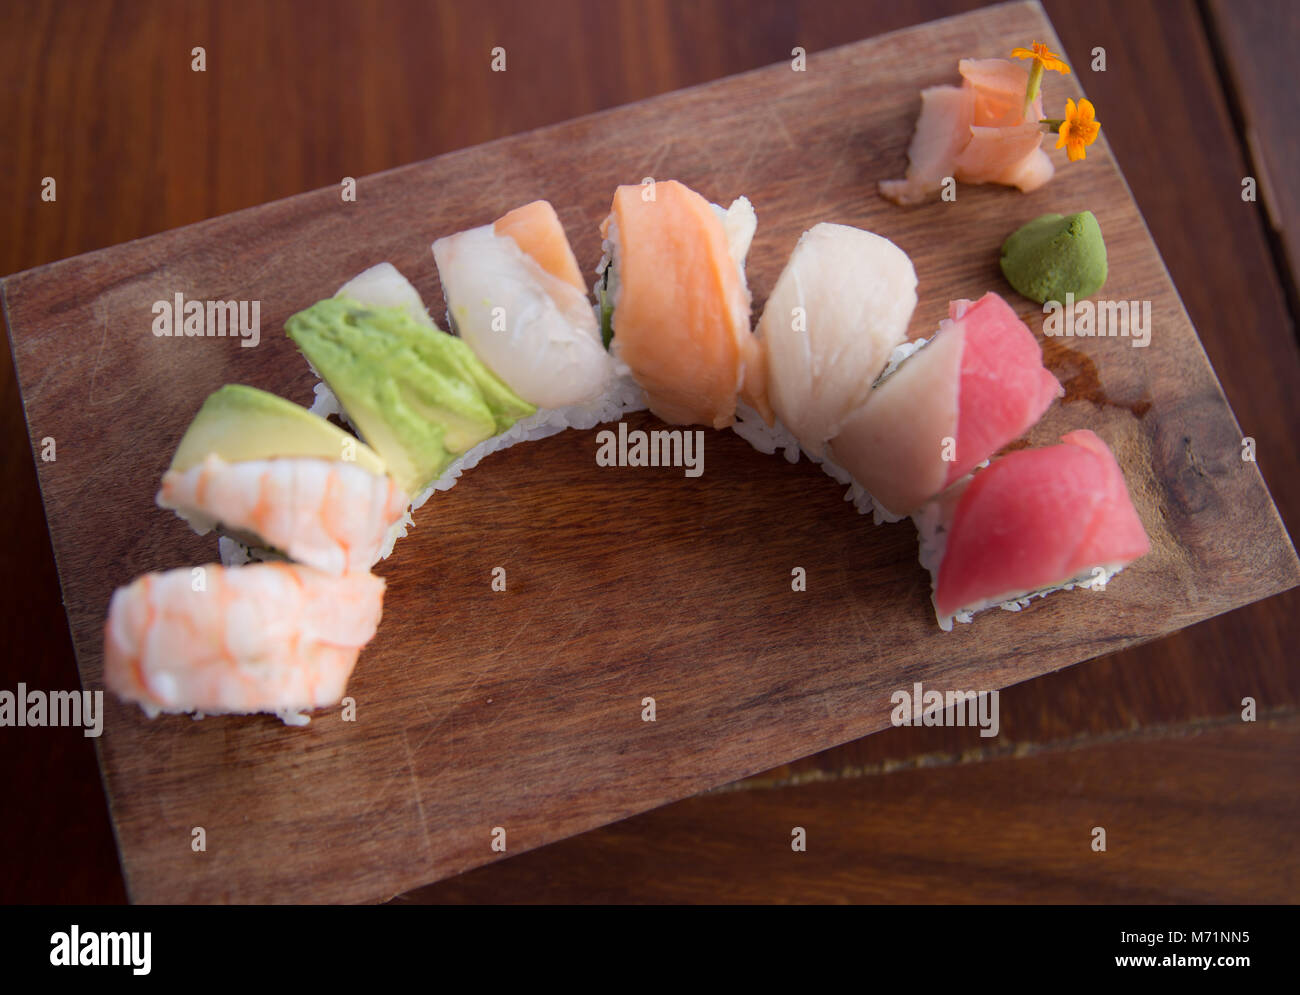 Just Served Rainbow Roll - Stock Image